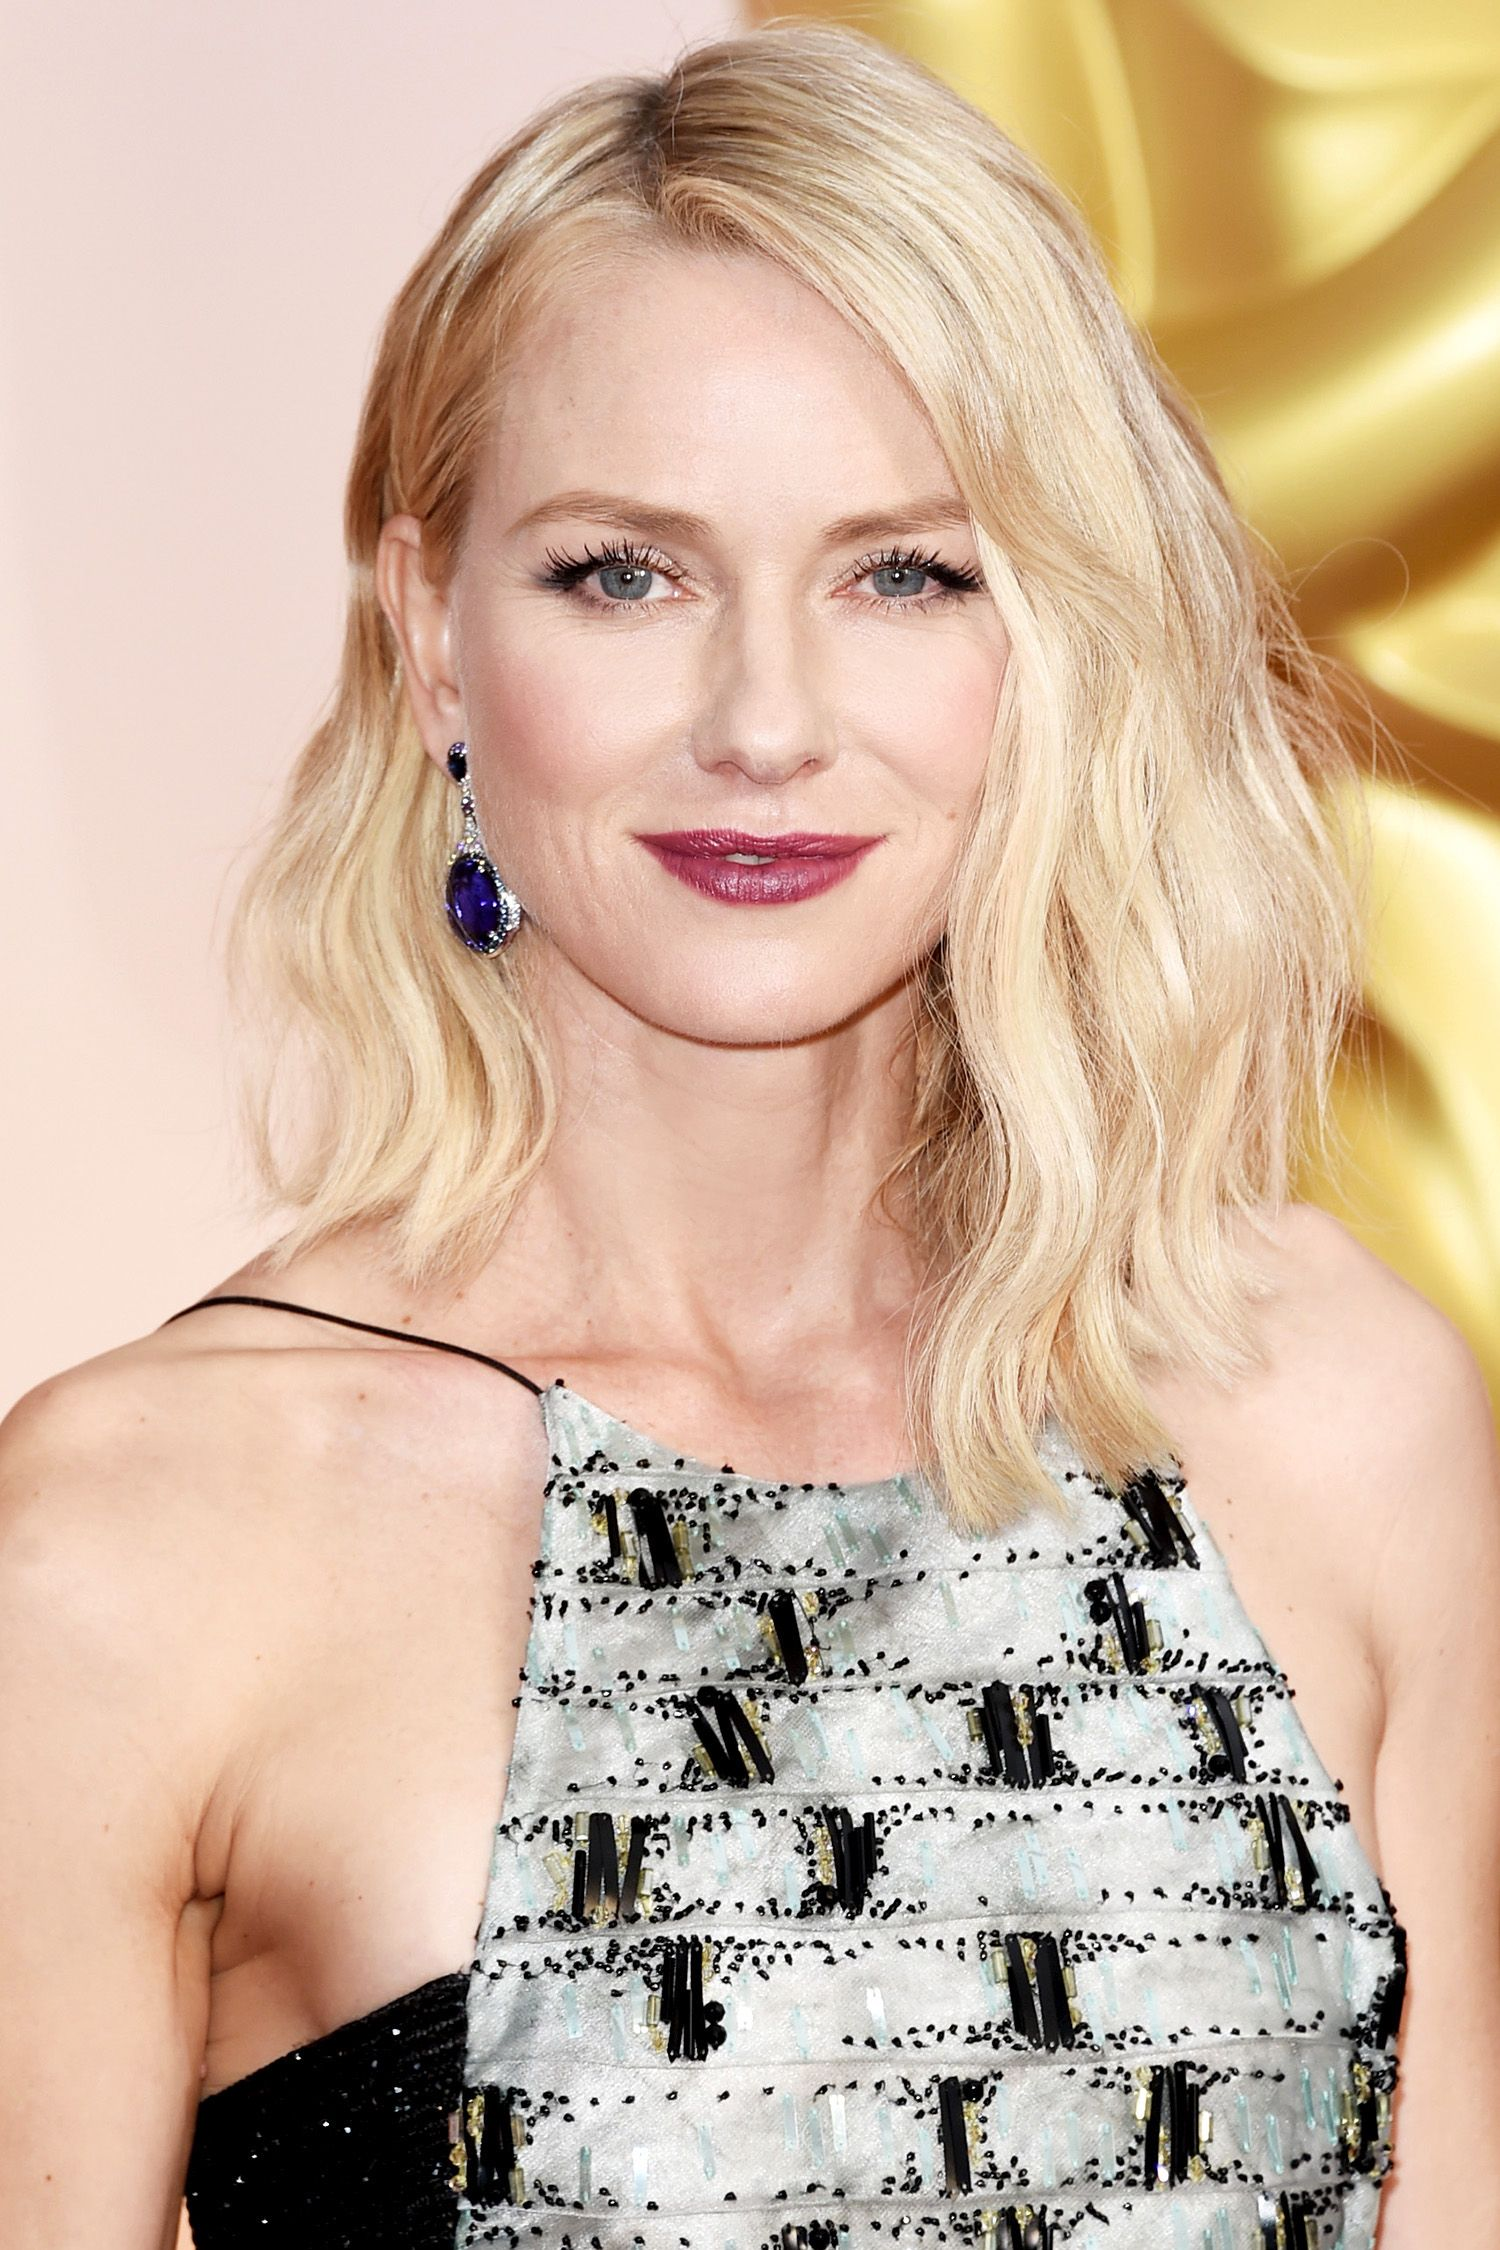 HOLLYWOOD, CA - FEBRUARY 22:  Actress Naomi Watts attends the 87th Annual Academy Awards at Hollywood & Highland Center on February 22, 2015 in Hollywood, California.  (Photo by Jason Merritt/Getty Images)